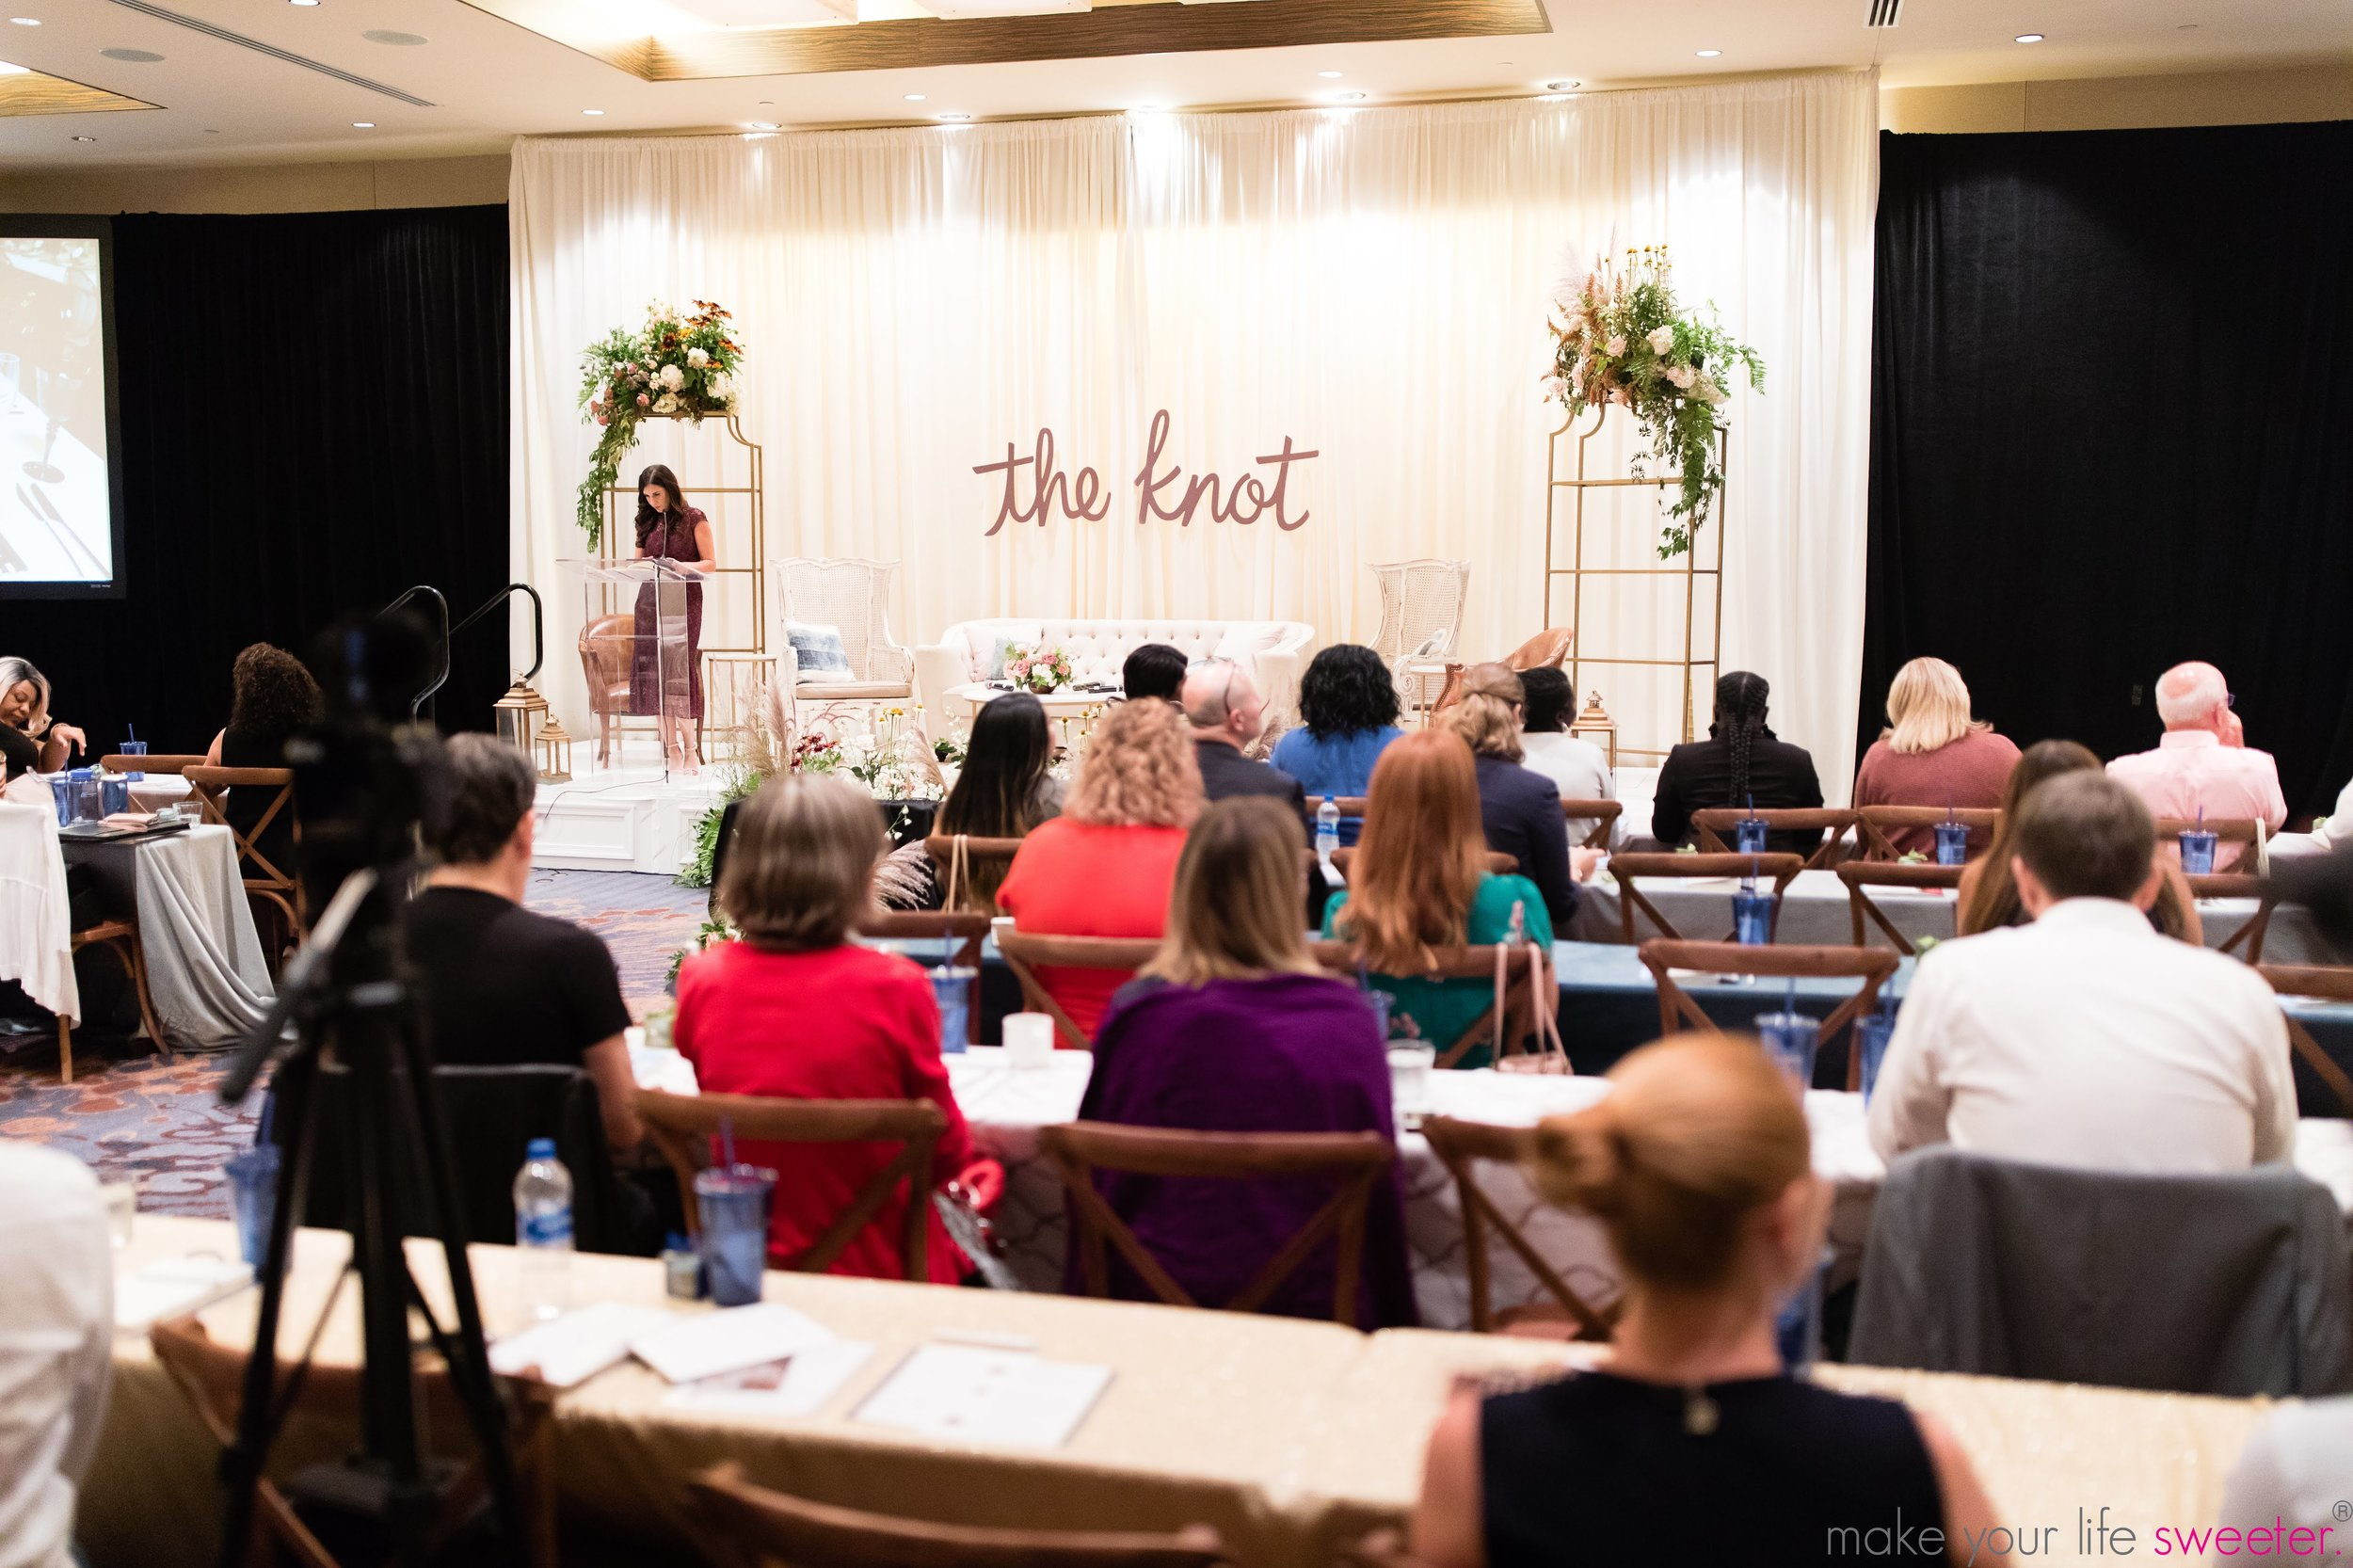 Make Your Life Sweeter Events - The Knot Annapolis